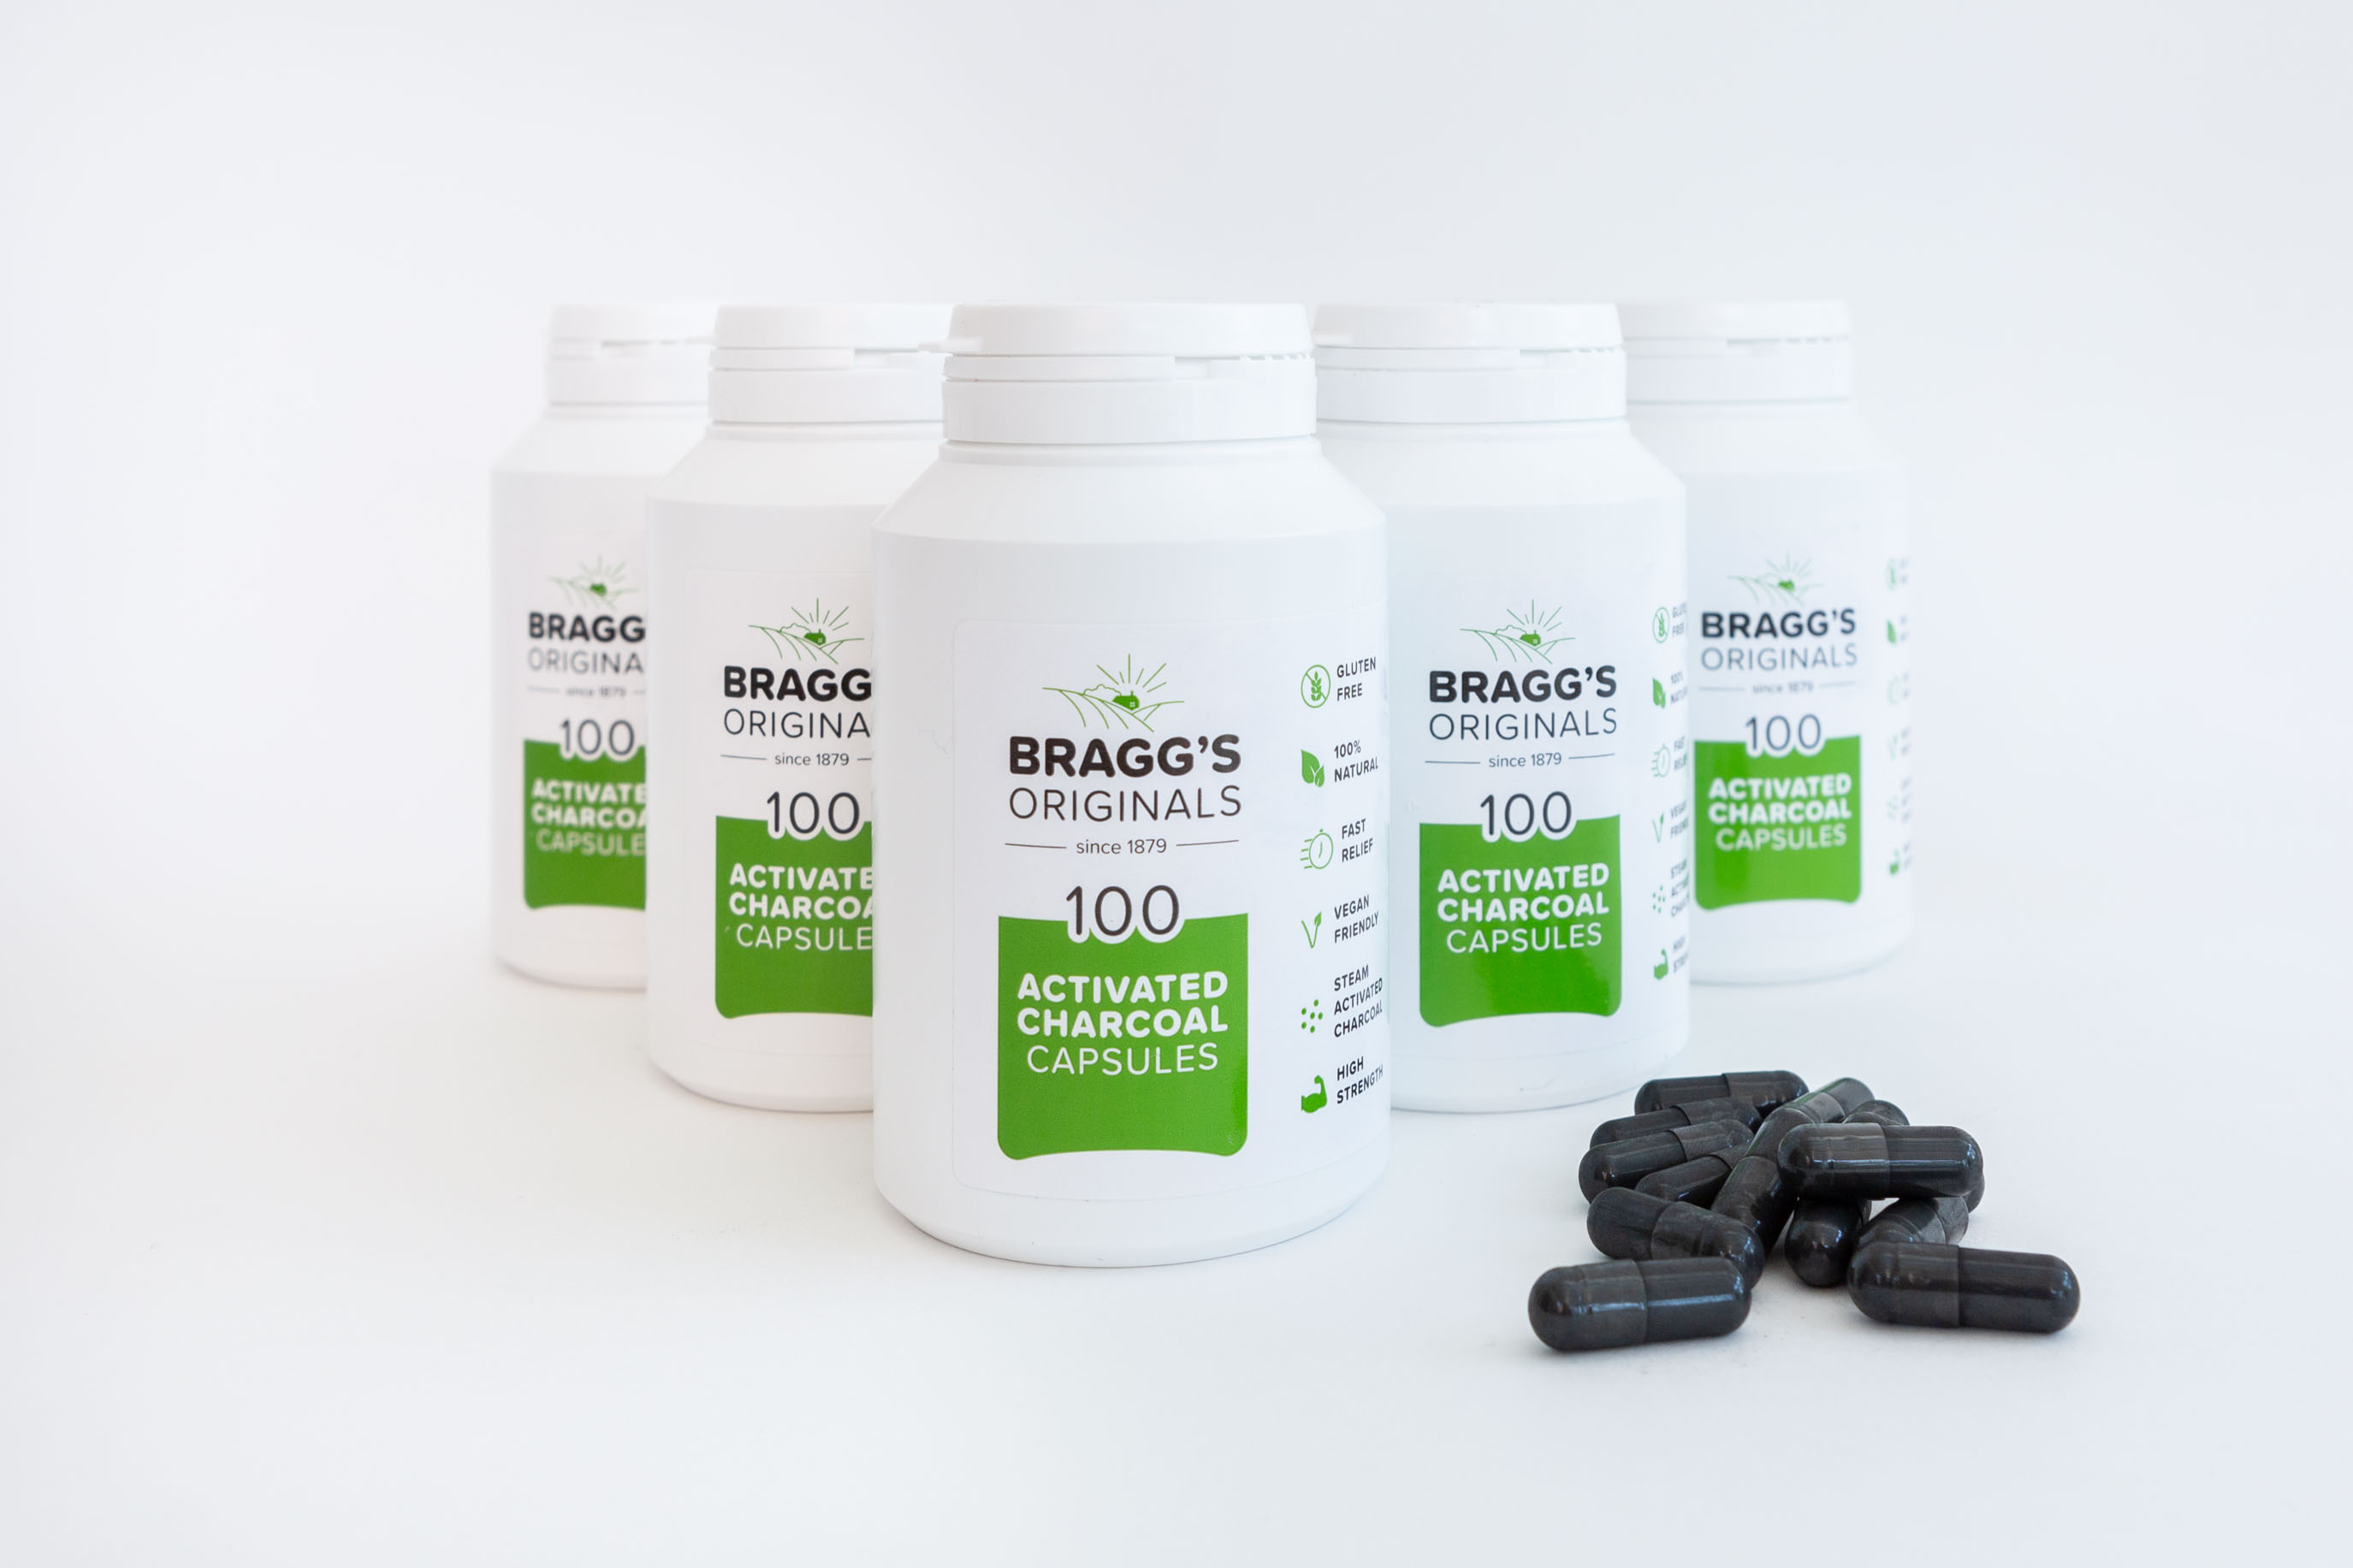 Braggs launches Vegetarian and Vegan Charcoal Capsules